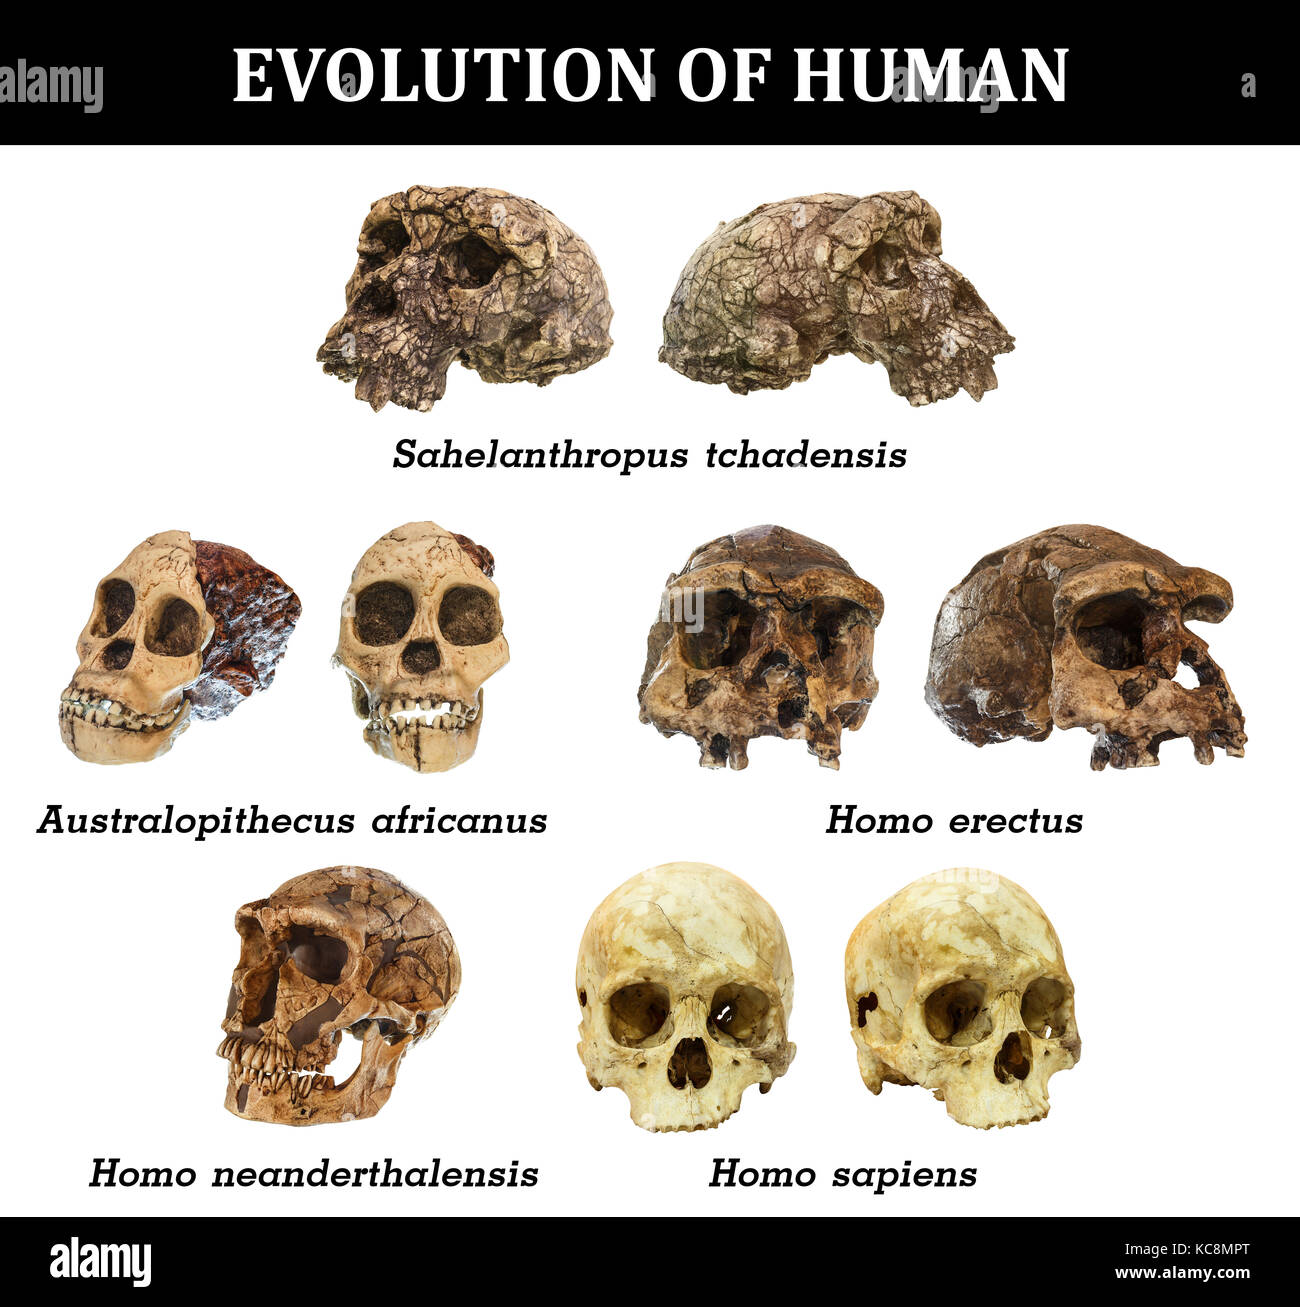 Comparison between Neanderthals and Homo Sapiens